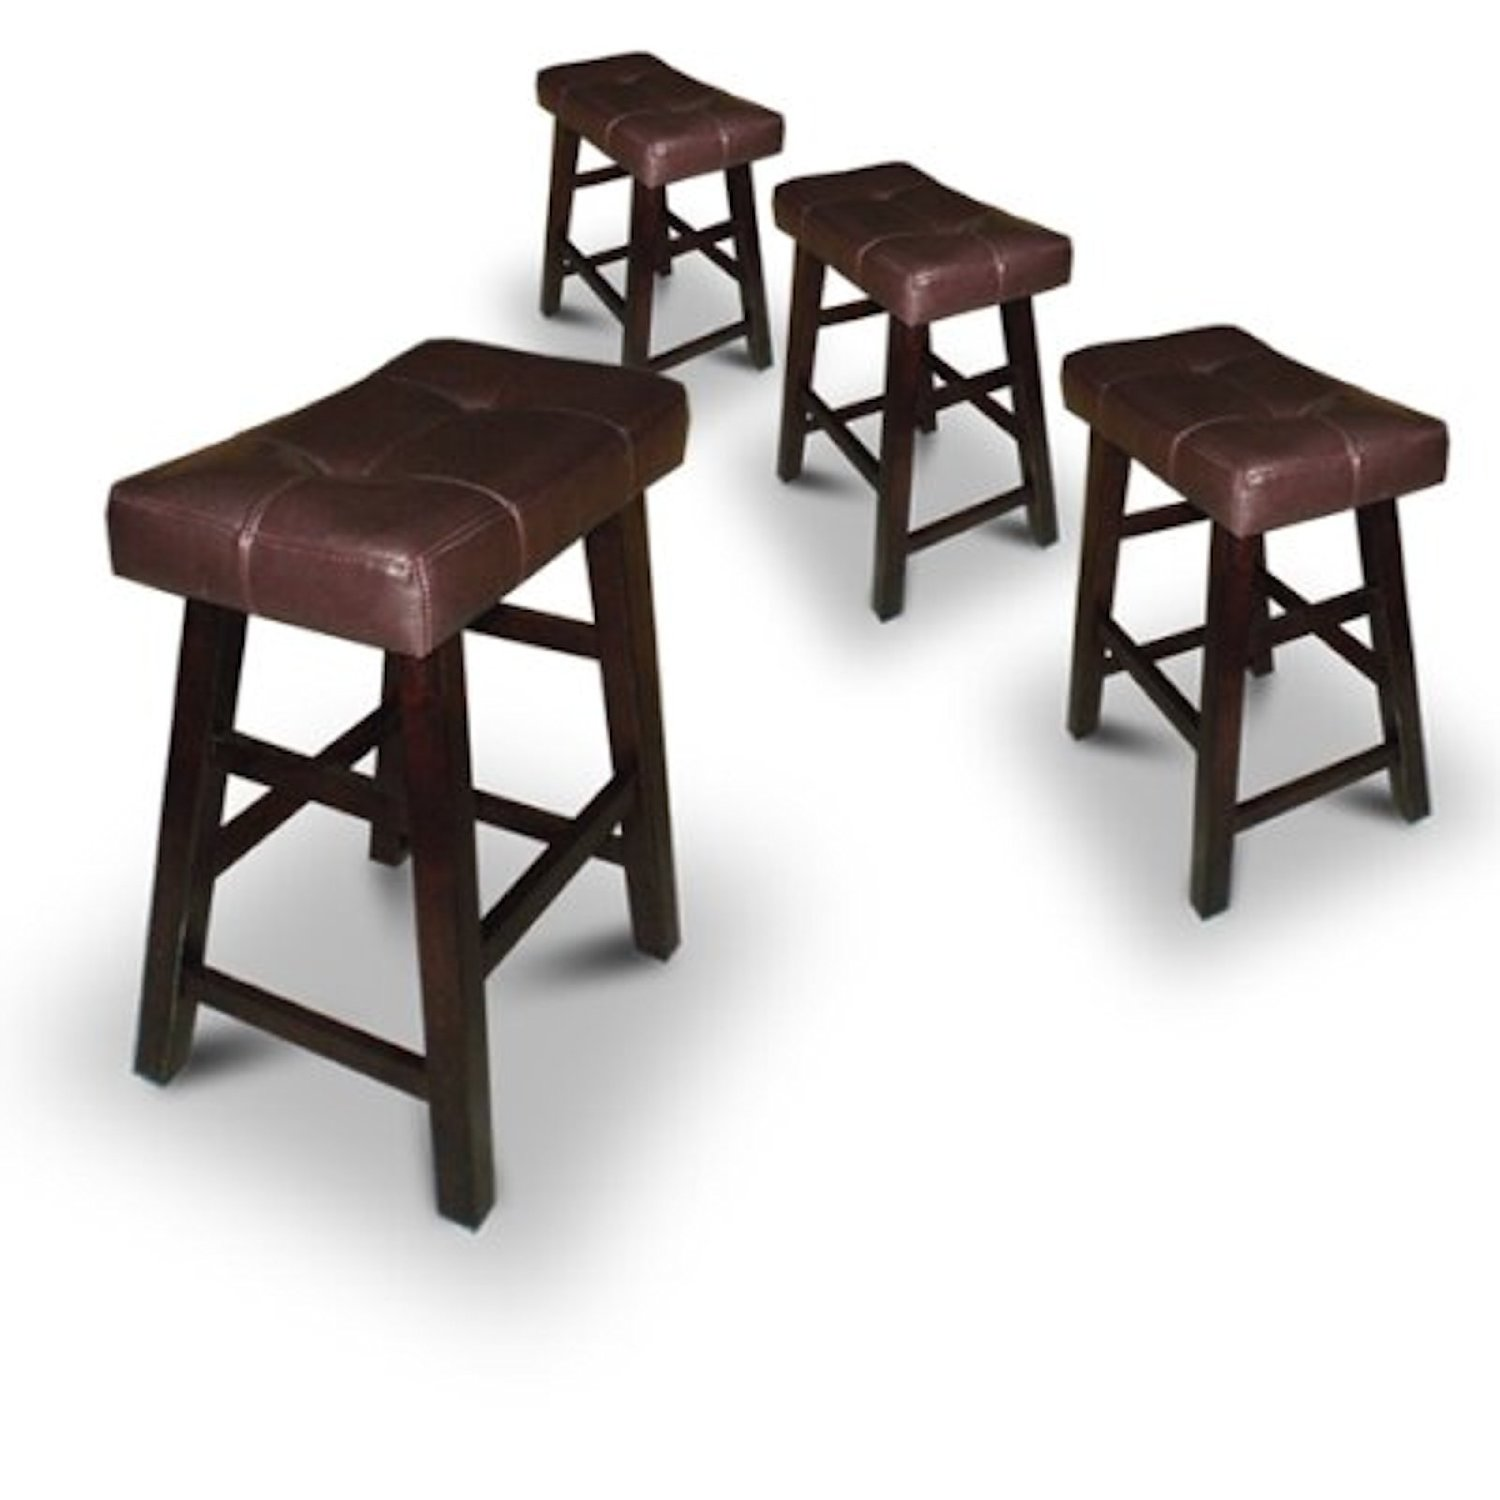 Noble House Rodriguez Backless cymax bar stools in Hazelnut for home furniture ideas